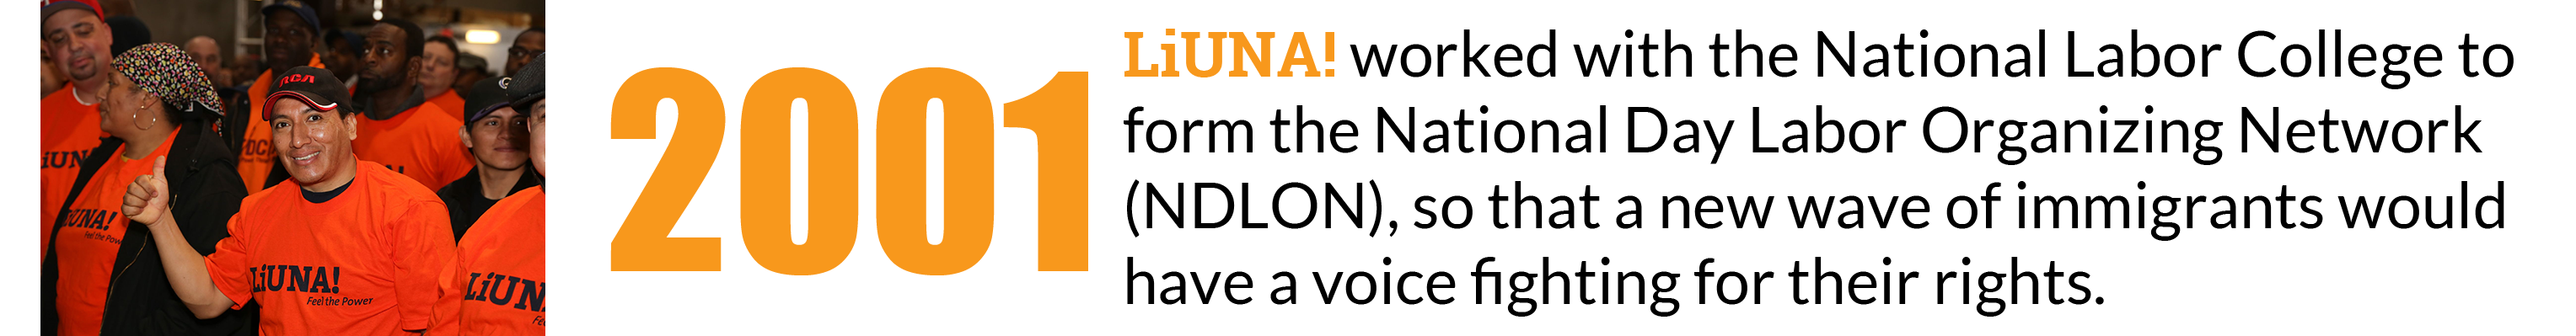 2001: LIUNA worked with the National Labor College to form the National Day Labor Organizing Network (NDLON), so that a new wave of immigrants would have a voice fighting for their rights.